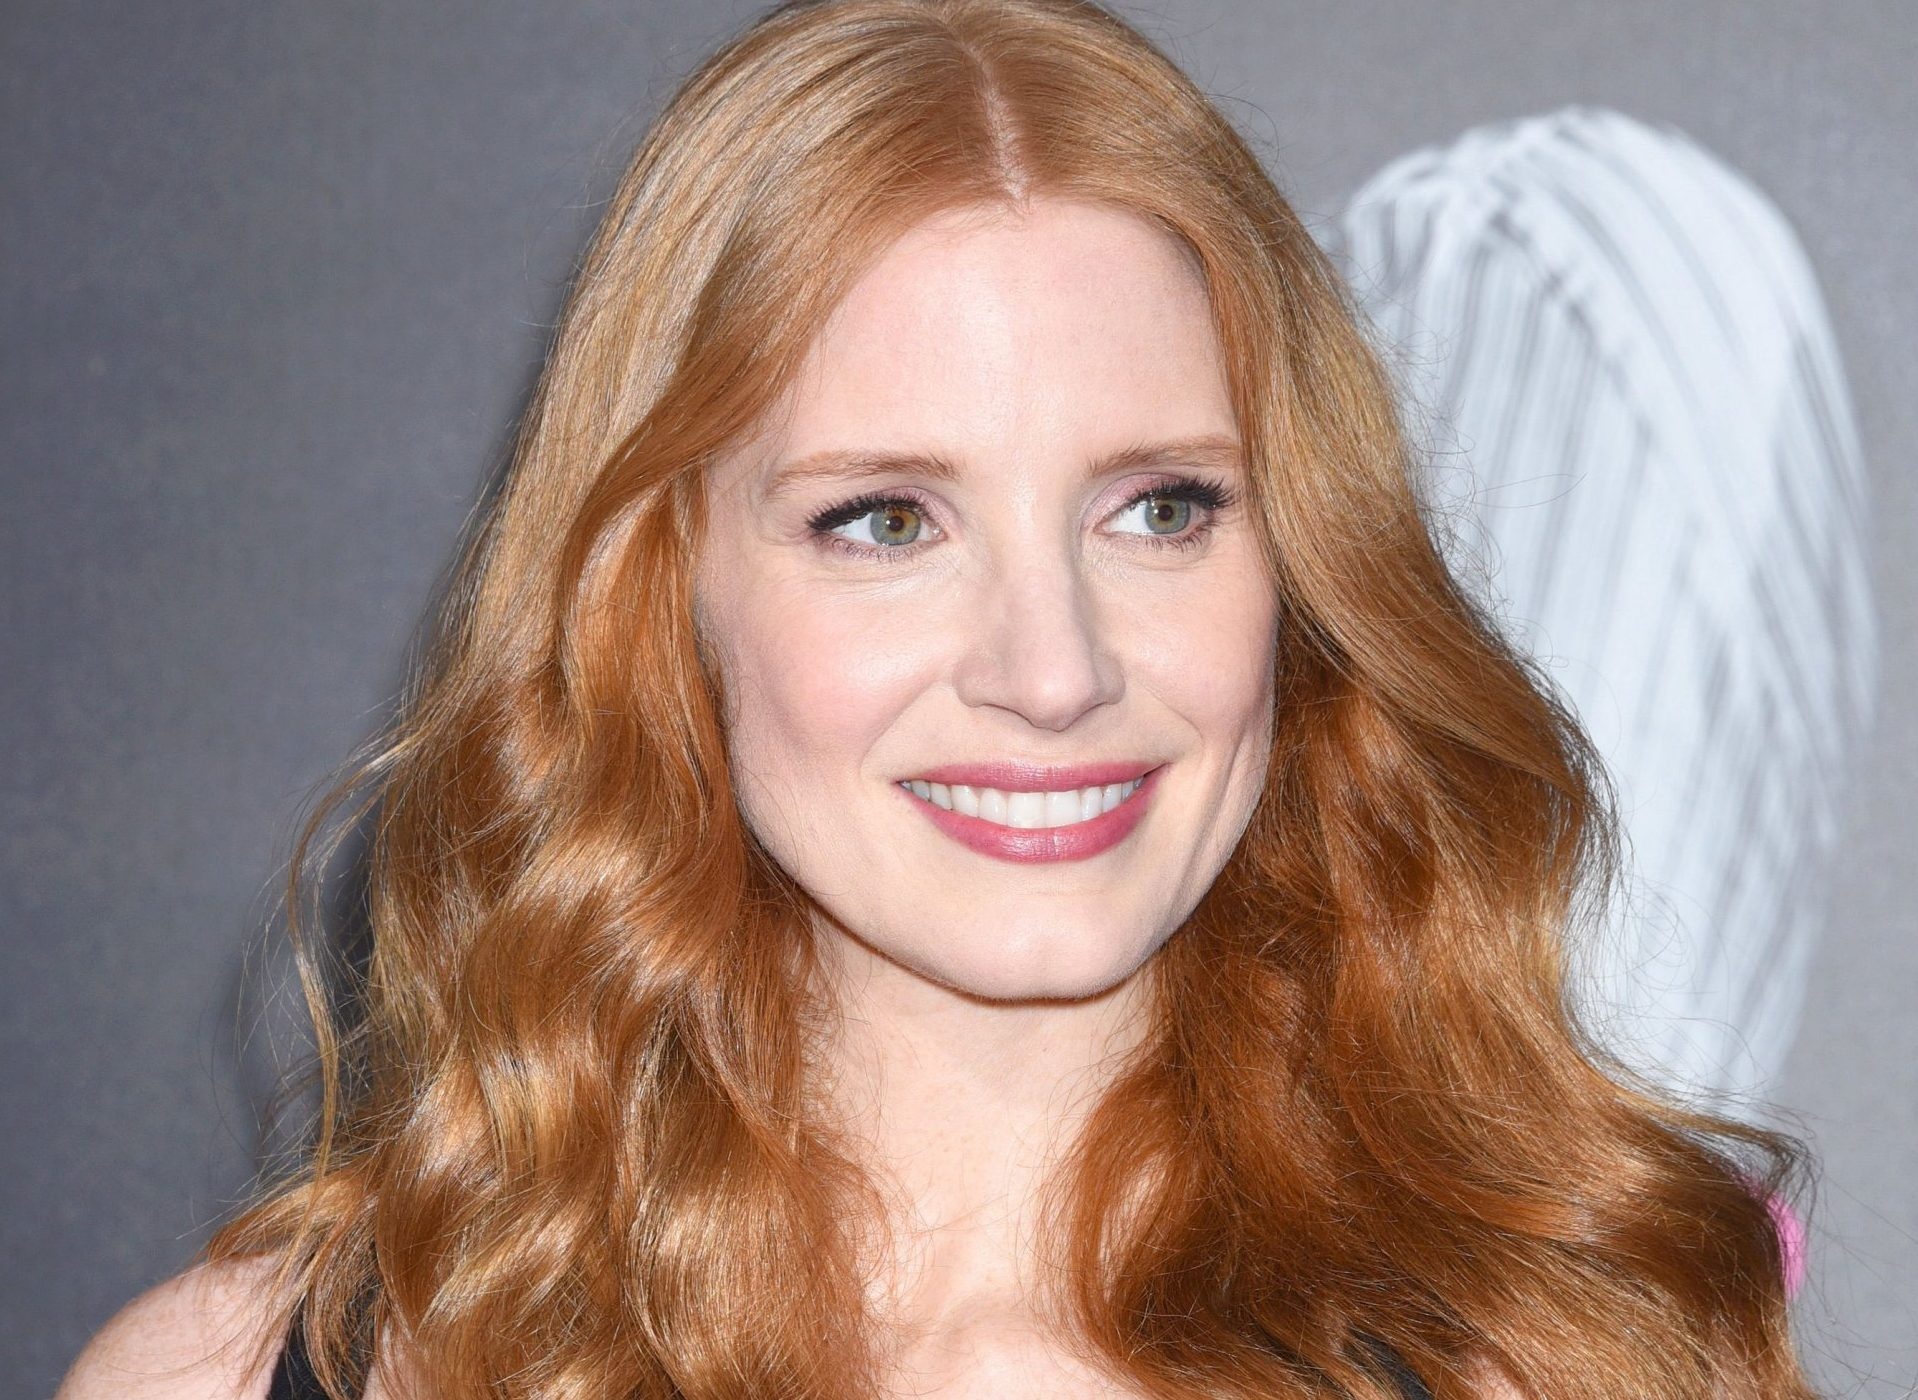 Jessica Chastain turns down huge movie roles if her male co-stars get paid more for doing the same job